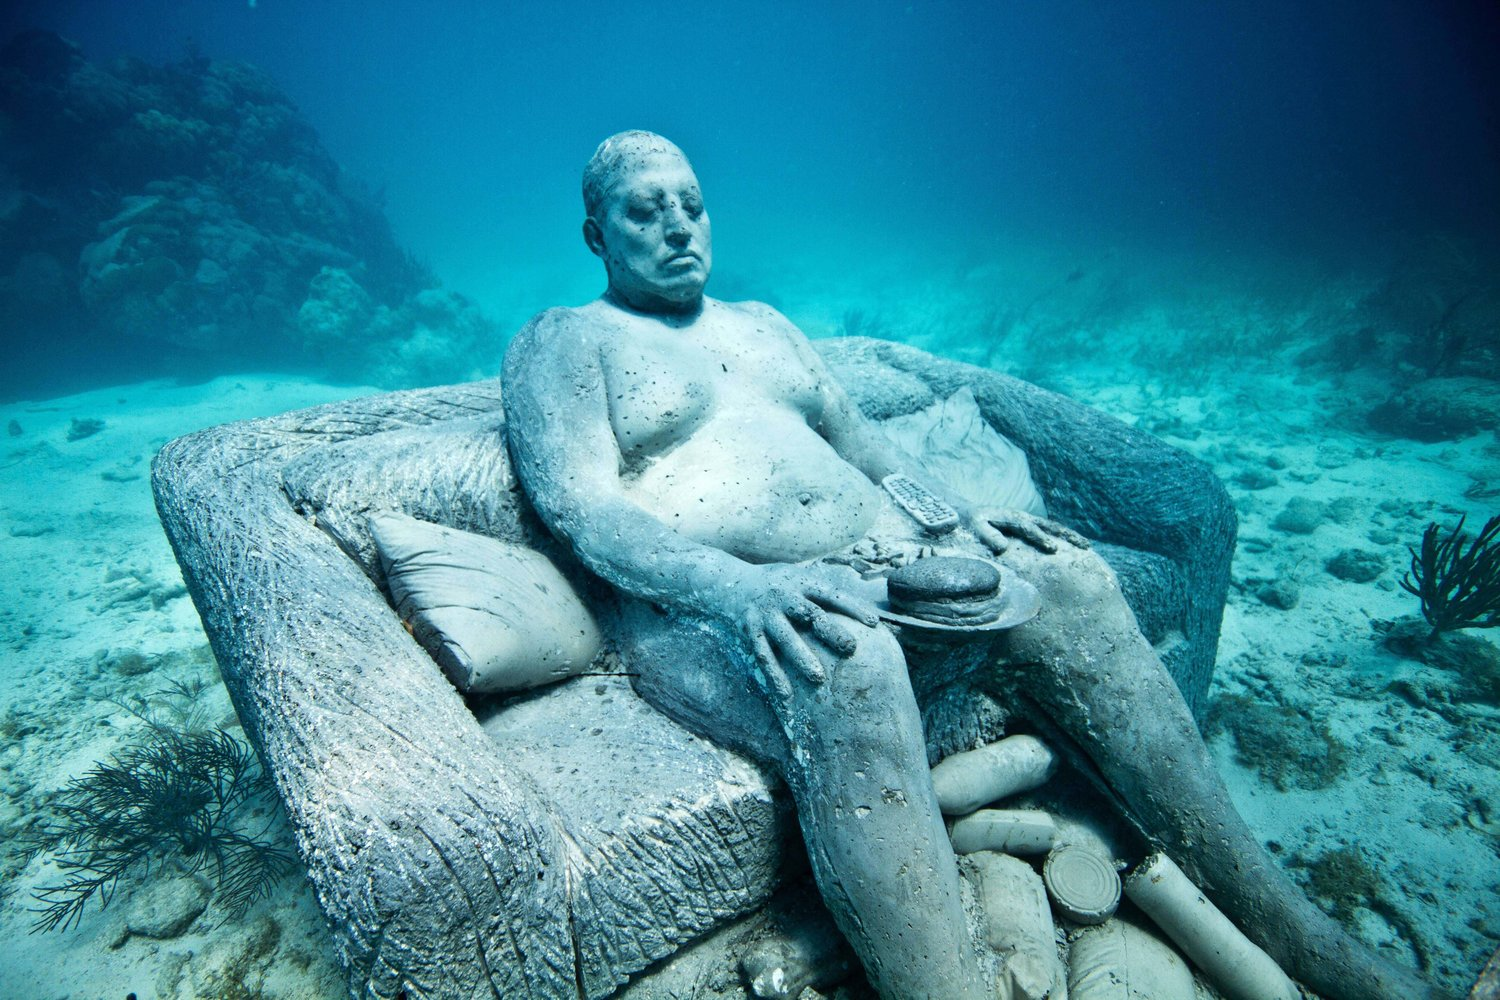 CANCUN, MEXICO - 2011: EXCLUSIVE. New life-sized statues added to the Museo Subacutico de Arte (MUSA) on the sea bed underwater at Cancun and Isla Mujeres National Marine Park in 2011 in Cancun, Mexico. Never-before-seen pictures show the fusion of art and conservation in a artificial reef supporting marine life deep underwater - made from sculptures of real members of the public. Bright tropical fish and agile divers can be seen darting in and out of the huge living art piece that contains hundreds of life-sized statues on the sea bed. Big thinking British artist Jason de Caires Taylor, 36, from Cantebury, Kent captured impressions of real people using 'life casts' and built the installation using materials that will encourage coral to grow. It will produce a coral reef and new home for a variety of aquatic creatures at the Cancun and Isla Mujeres National Marine Park in Mexico. The project, called The Museo Subacutico de Arte (MUSA), aims to ease pressure on natural reefs in the area caused by over half a million water-going tourists who flock to the region every year. (Photo by Jason de Caires Taylor / Barcroft Media / Getty Images)